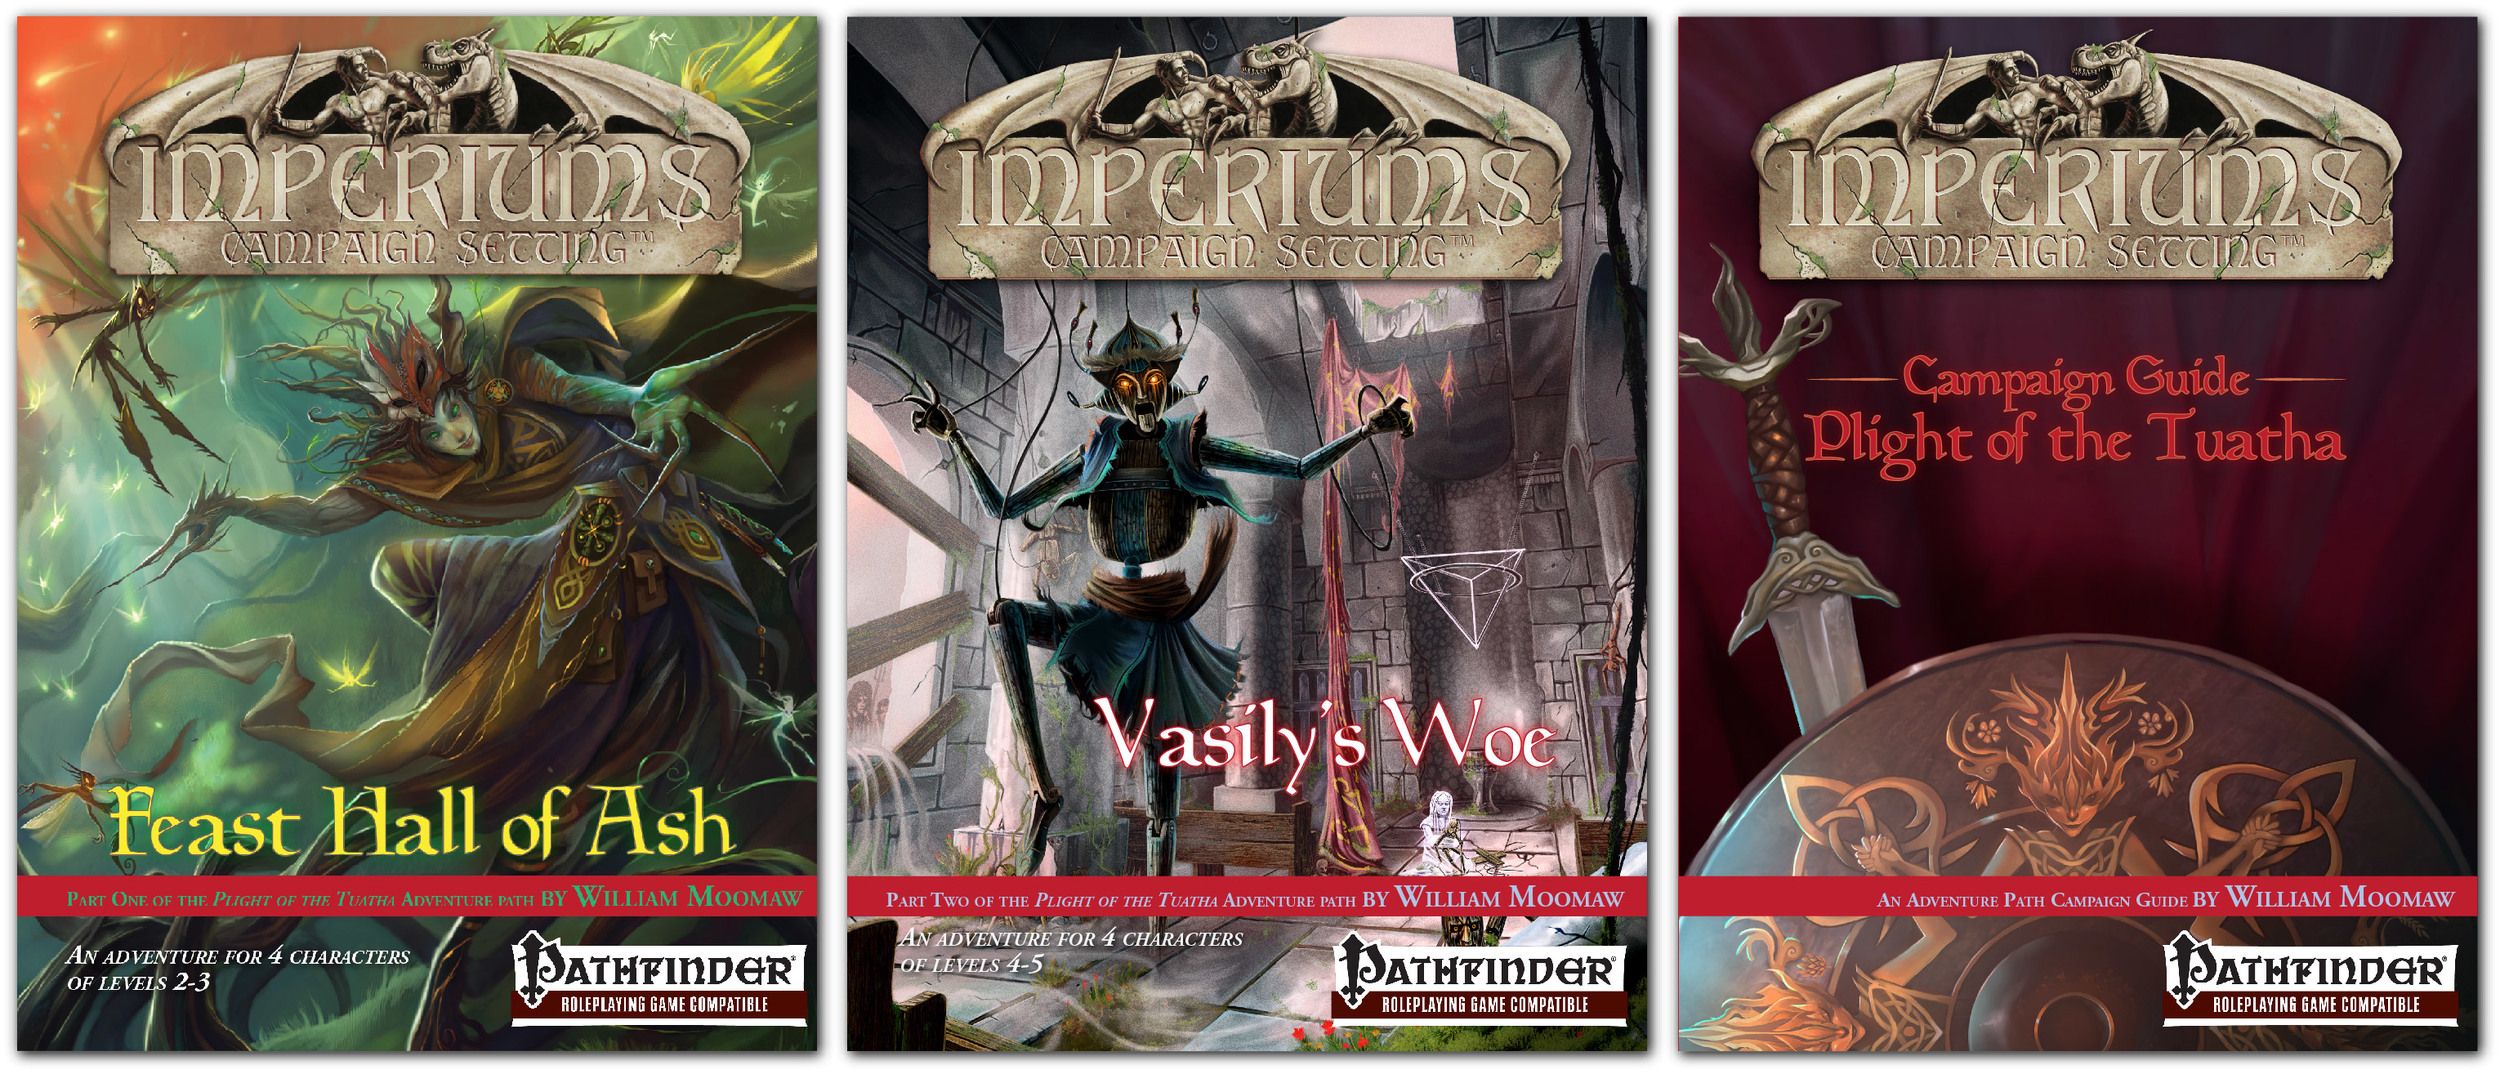 Covers of Part 1 & 2, and the Campaign Guide